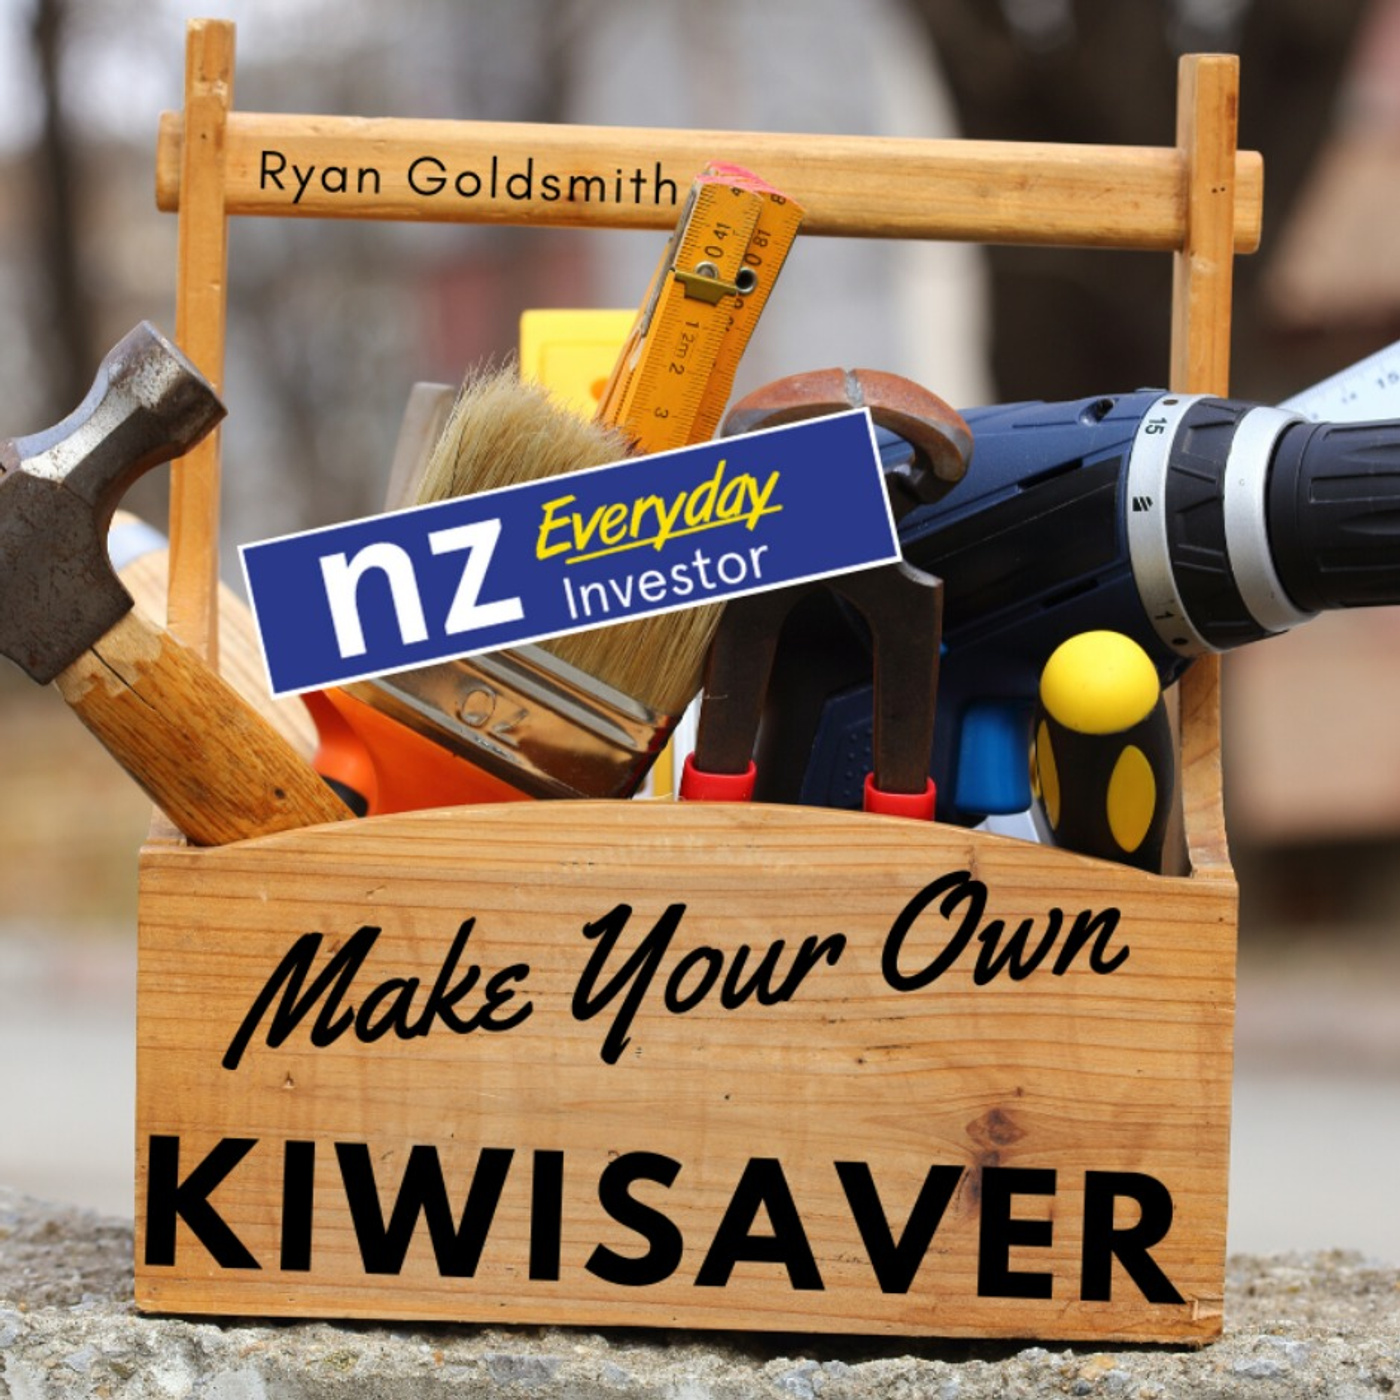 Make Your Own KiwiSaver